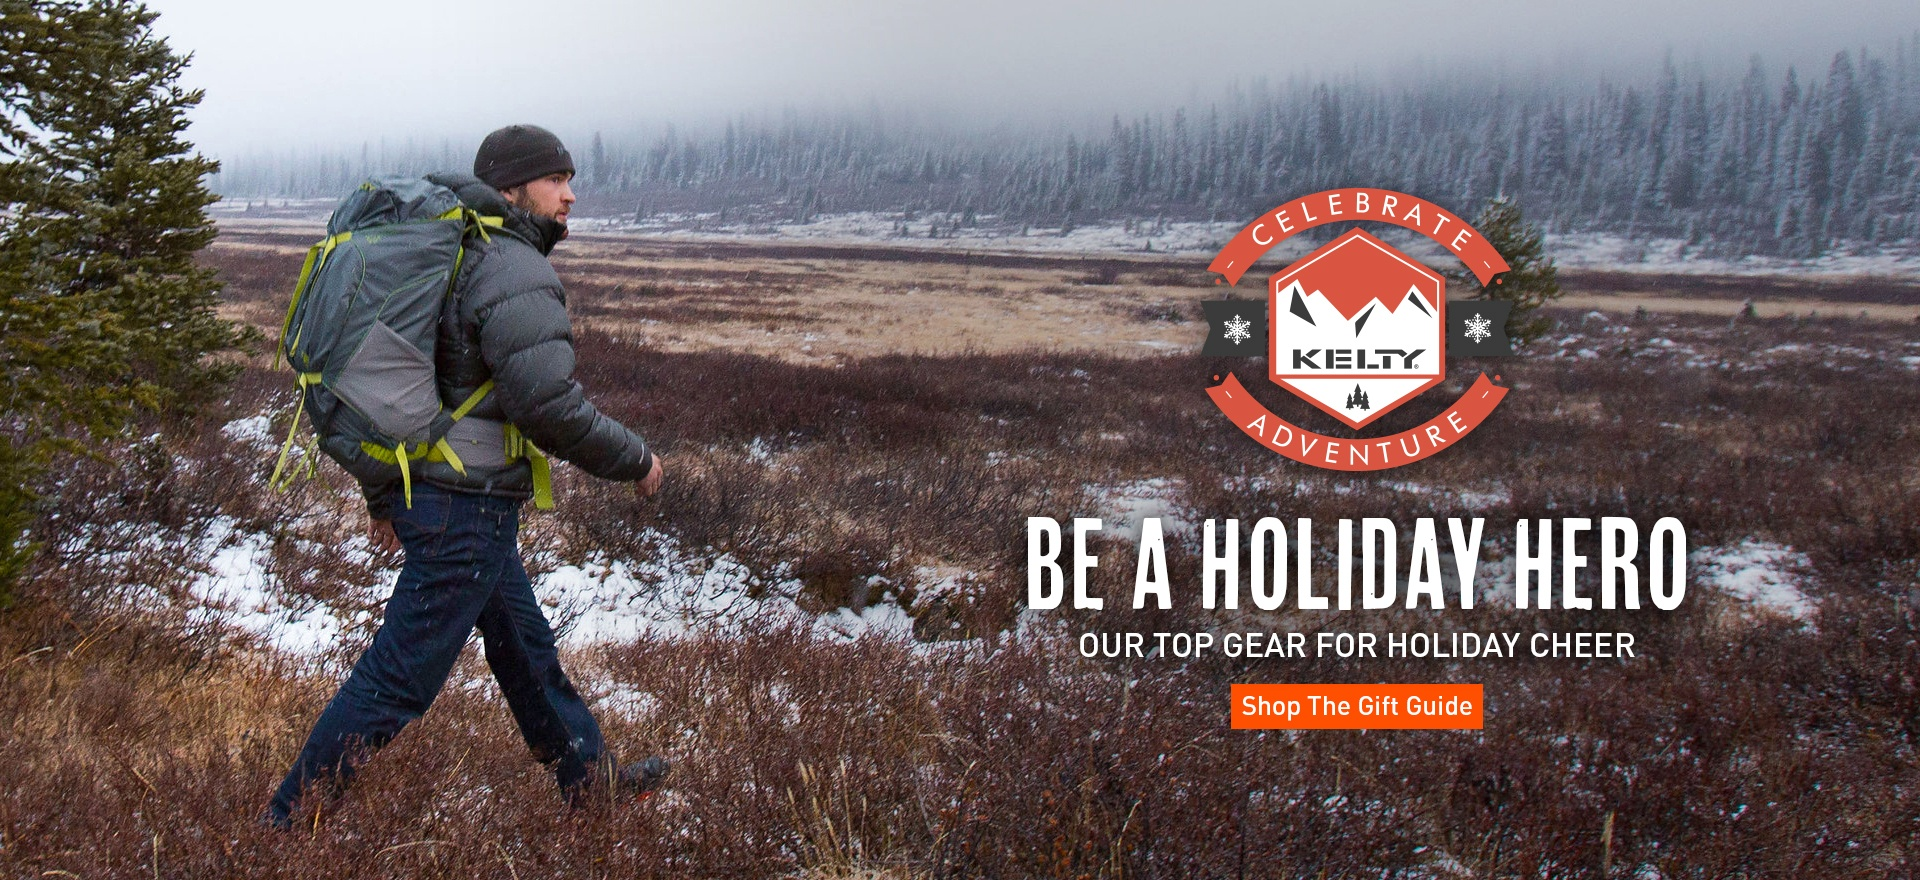 Shop the Kelty Holiday Gift Guide